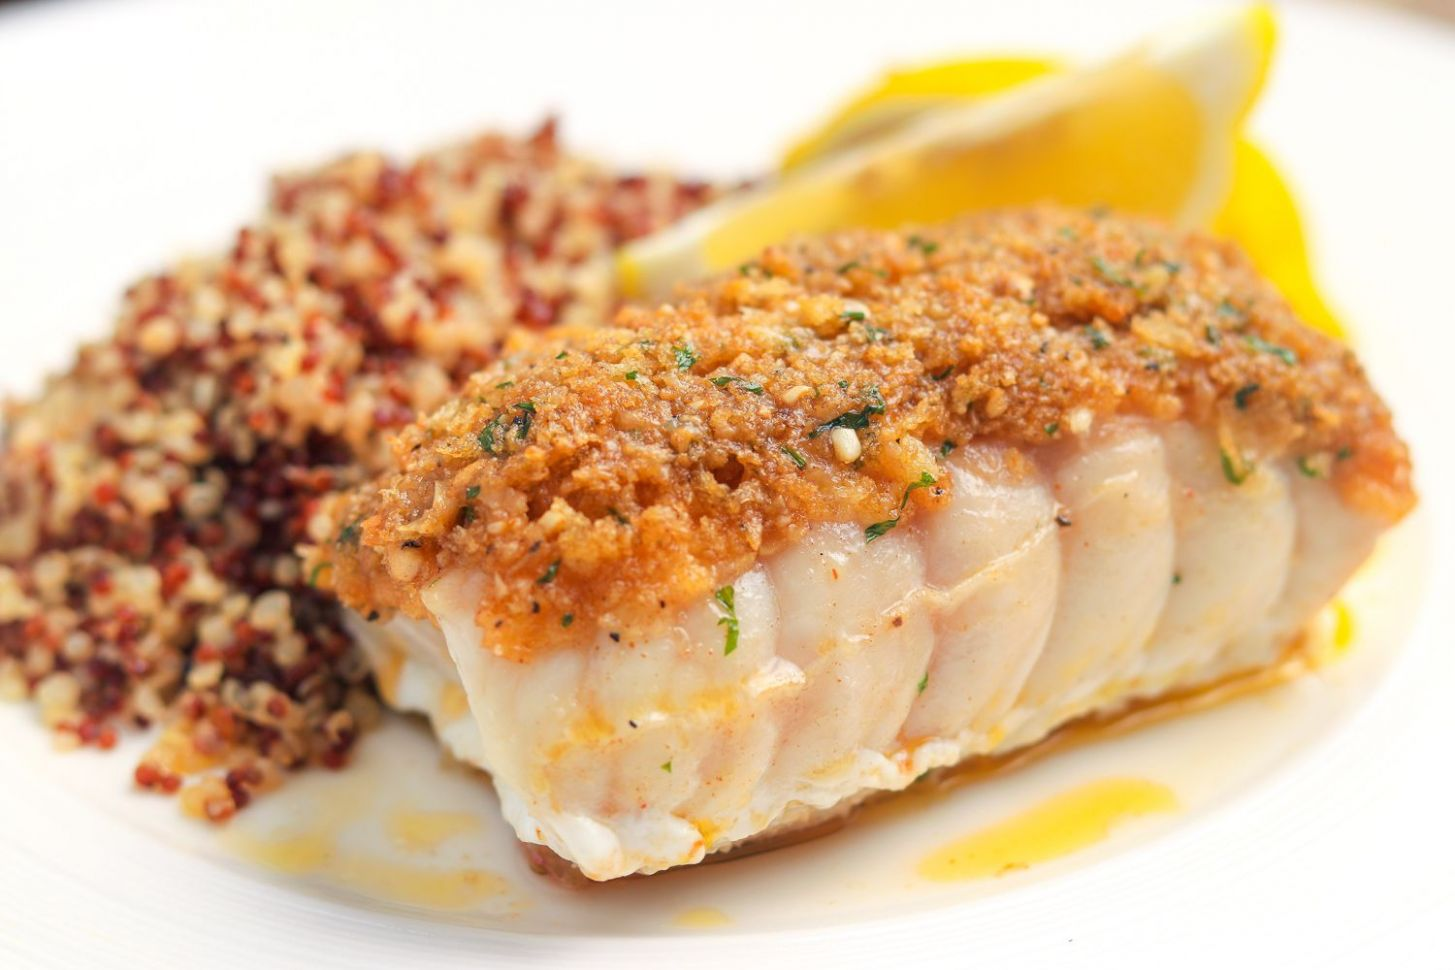 Baked Red Snapper With Garlic and Herbs Recipe